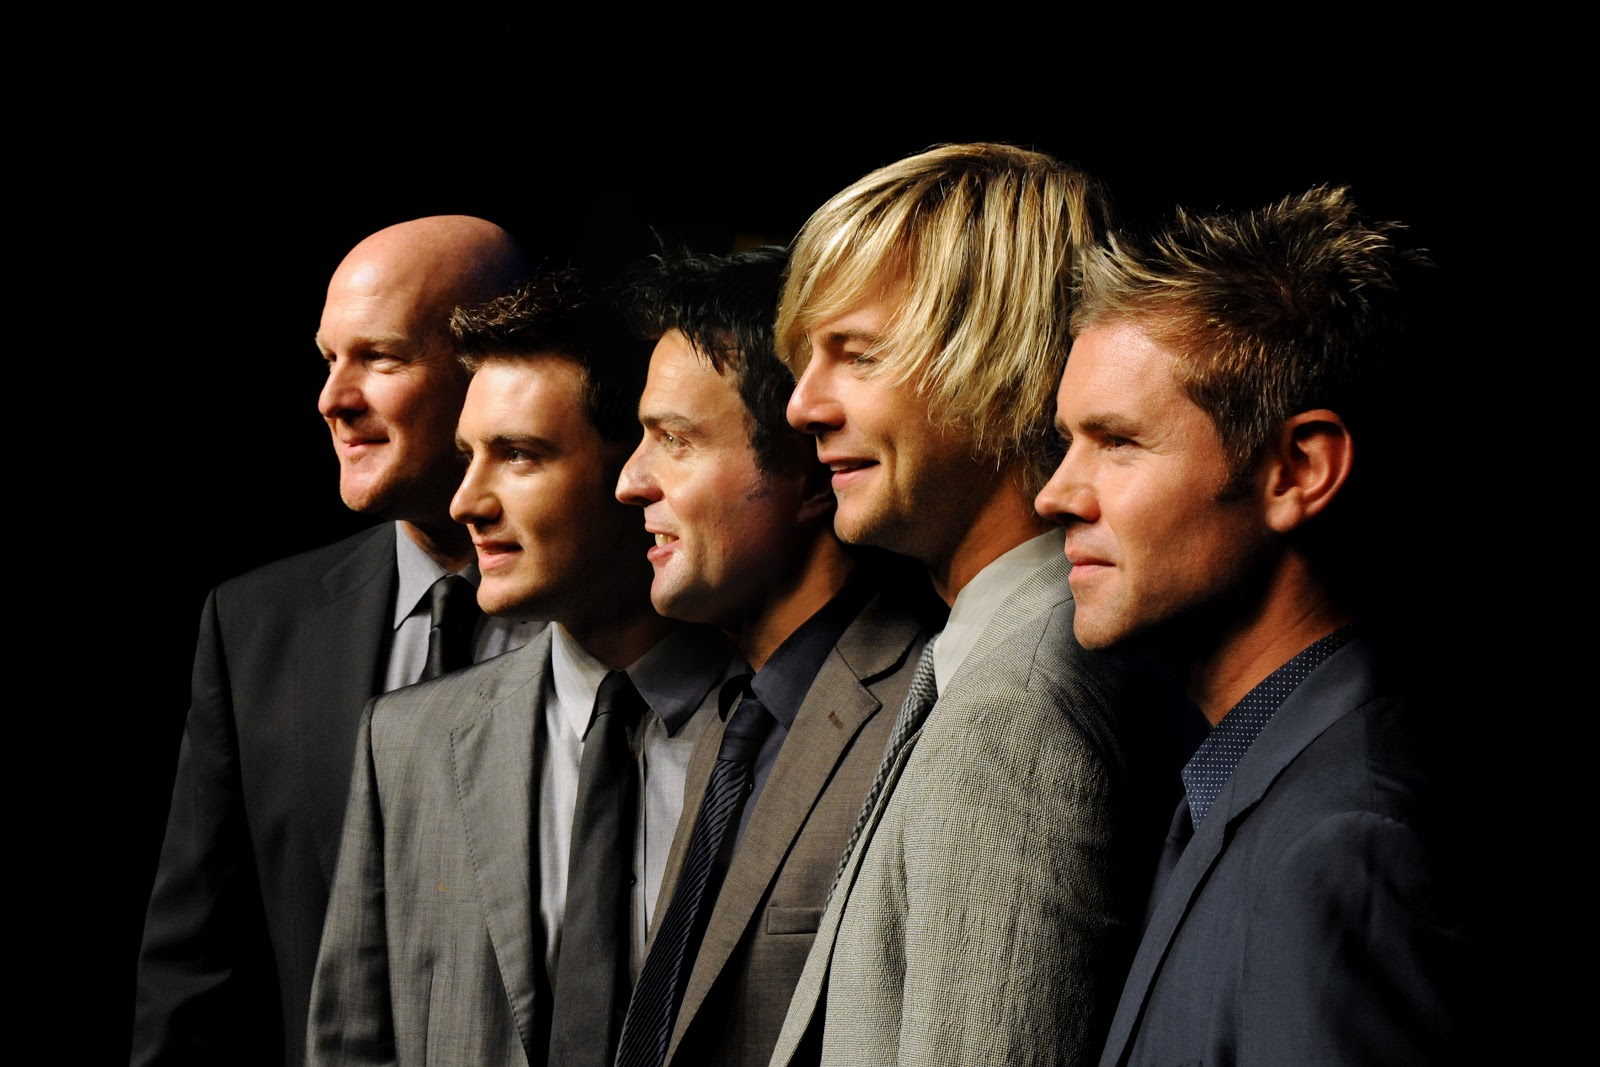 Canberra critics circle celtic thunder celtic thunder m4hsunfo